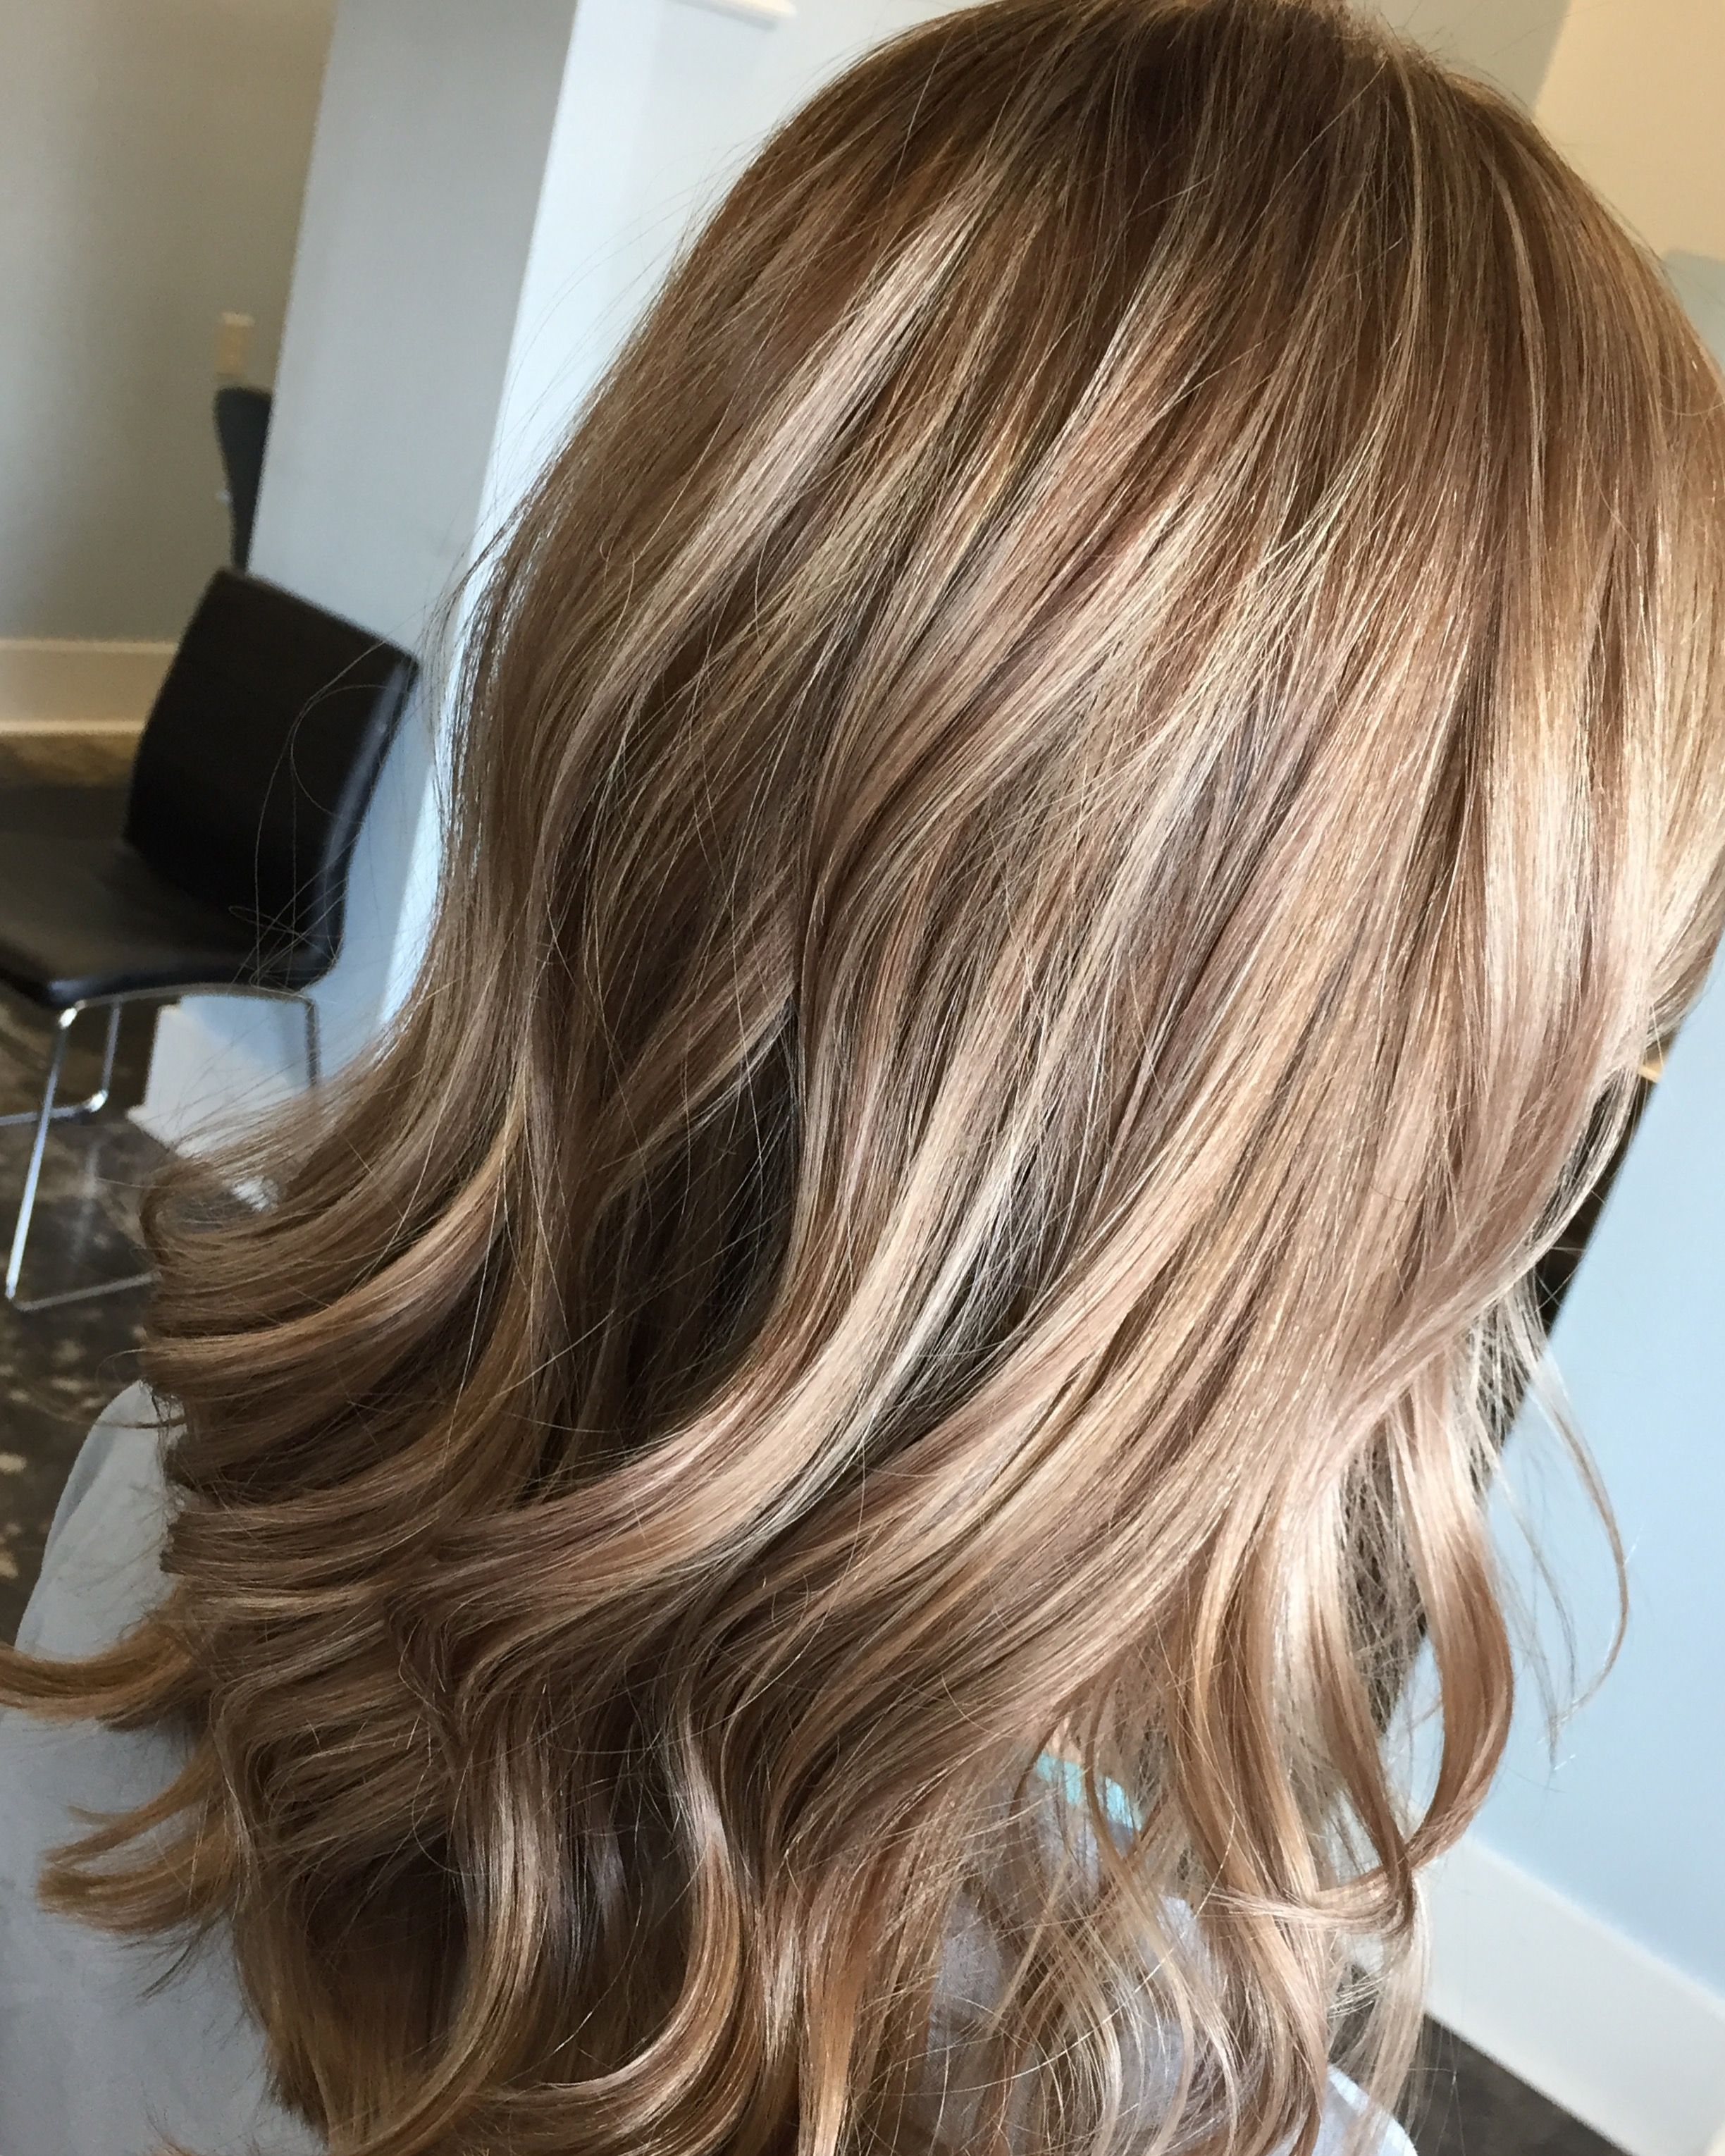 Highlights Blond Blonde Foiled Highlights With Level 8 Base Highlights